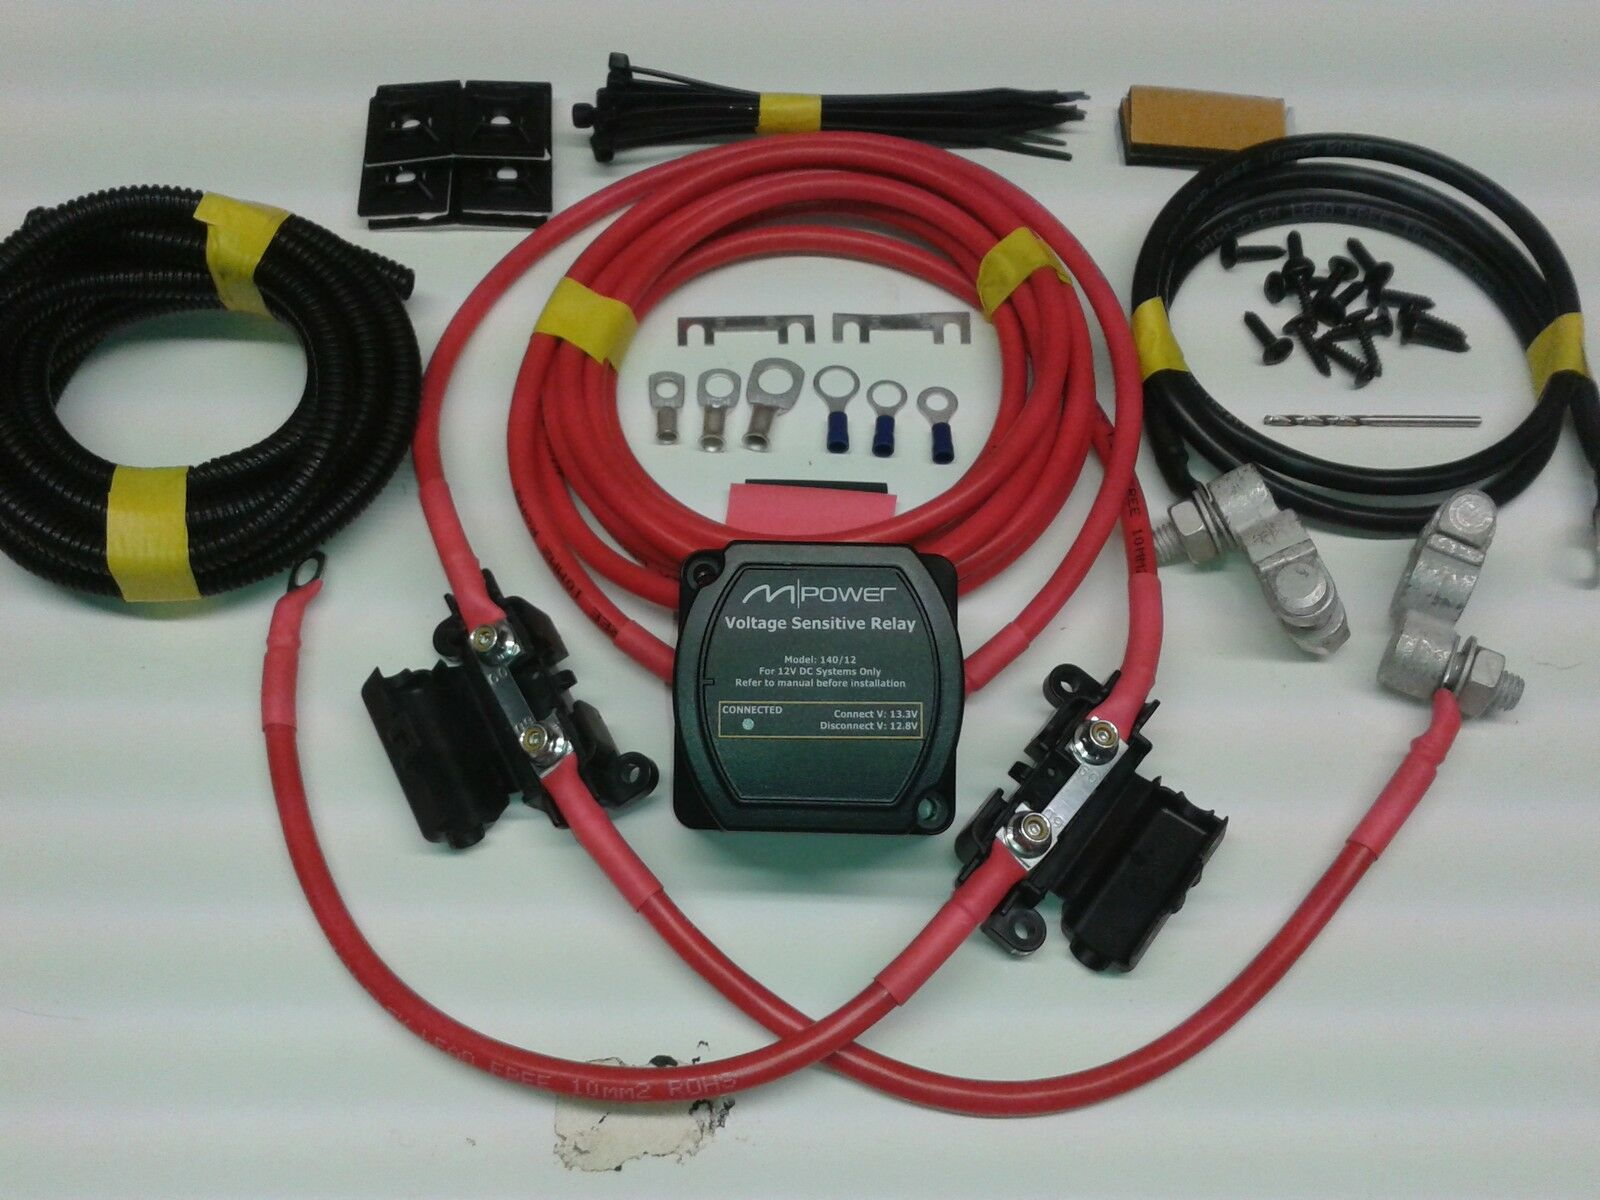 Split Charge Relay Shot Boat Building Maintenance Canal World Voltage Sensitive Wiring S L1600